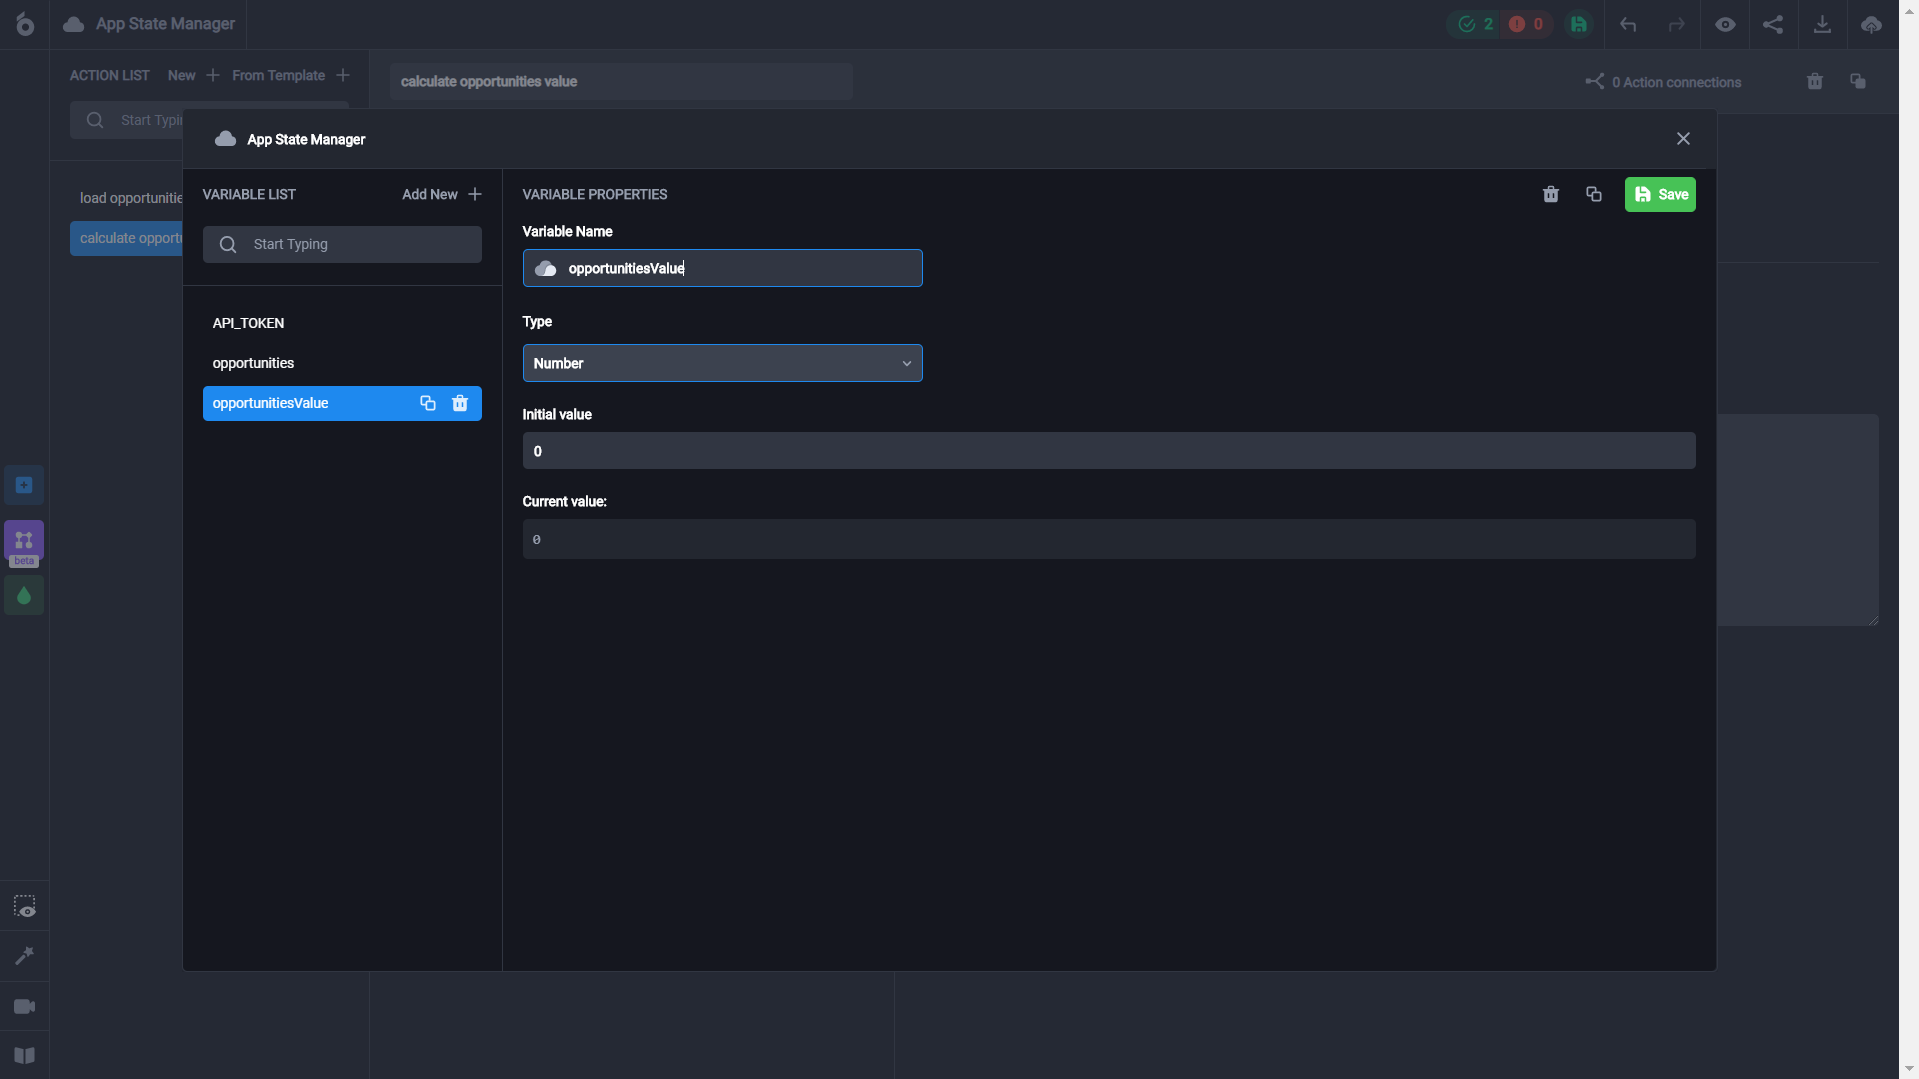 How-to guide on building a dashboard connected to Airtable without coding using the UI Bakery web app builder